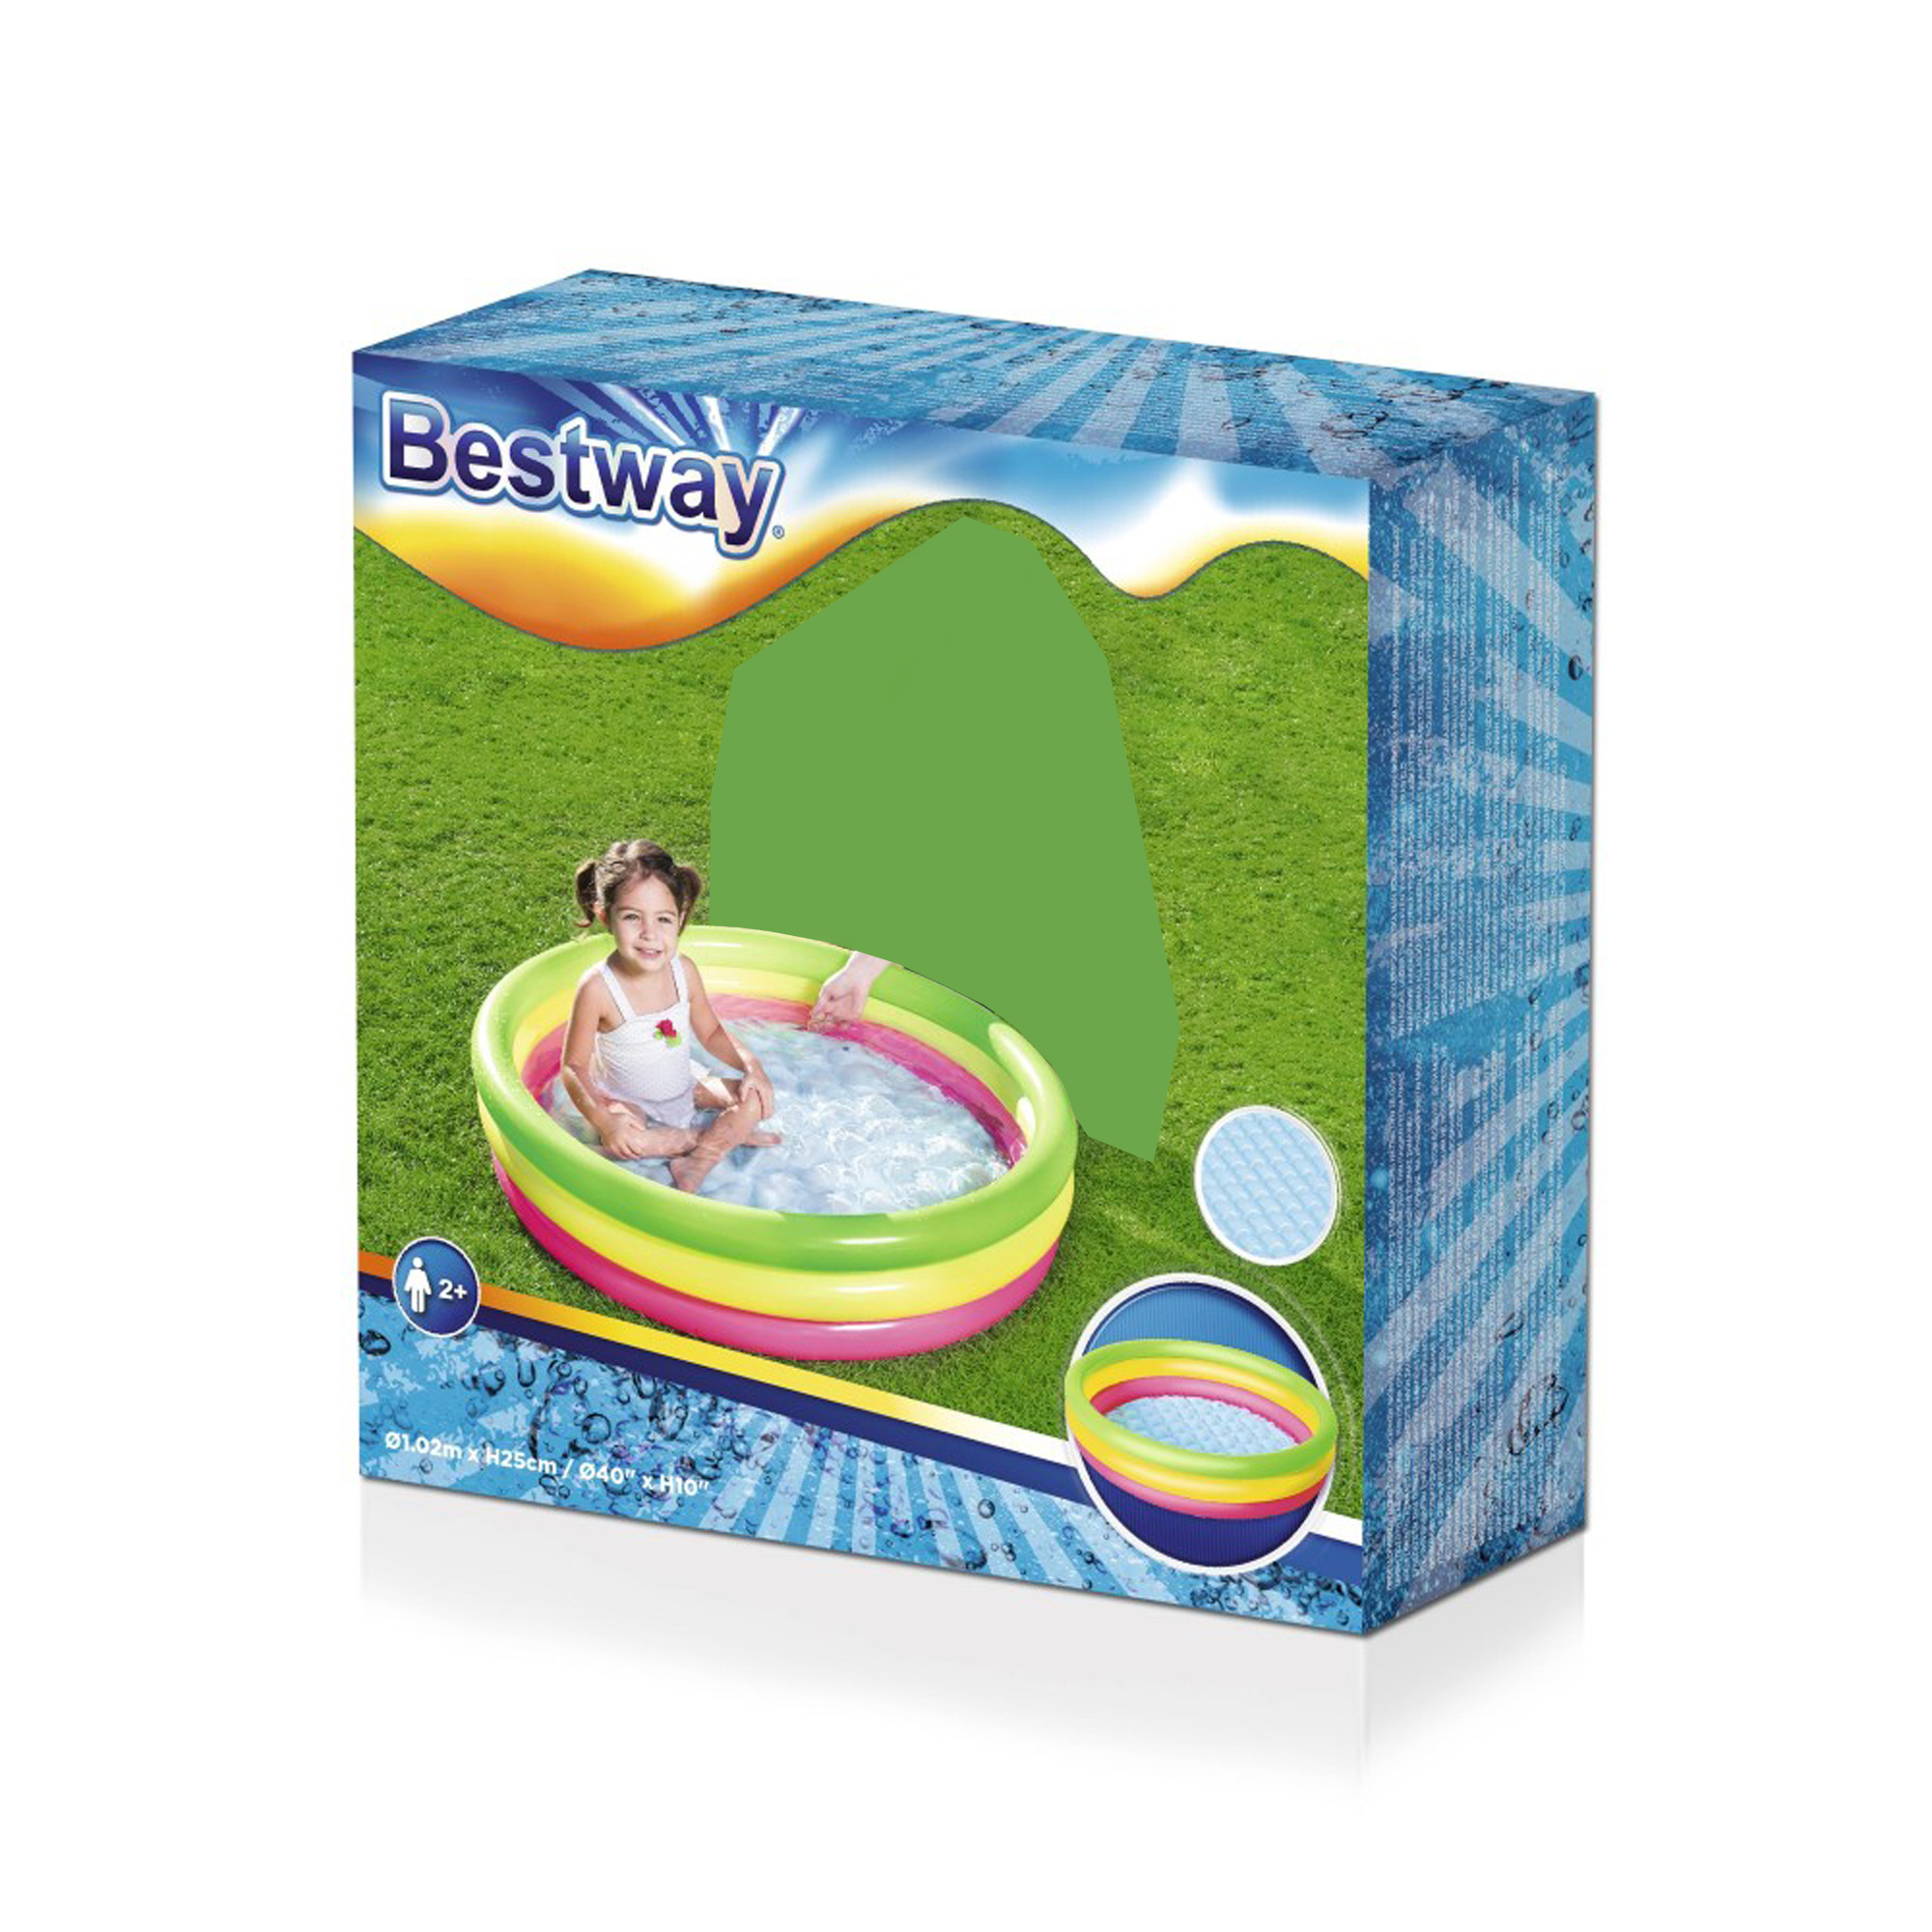 "BESTWAY 3 RING POOL 1.22M X 25 CM 48/"" X 10/"""